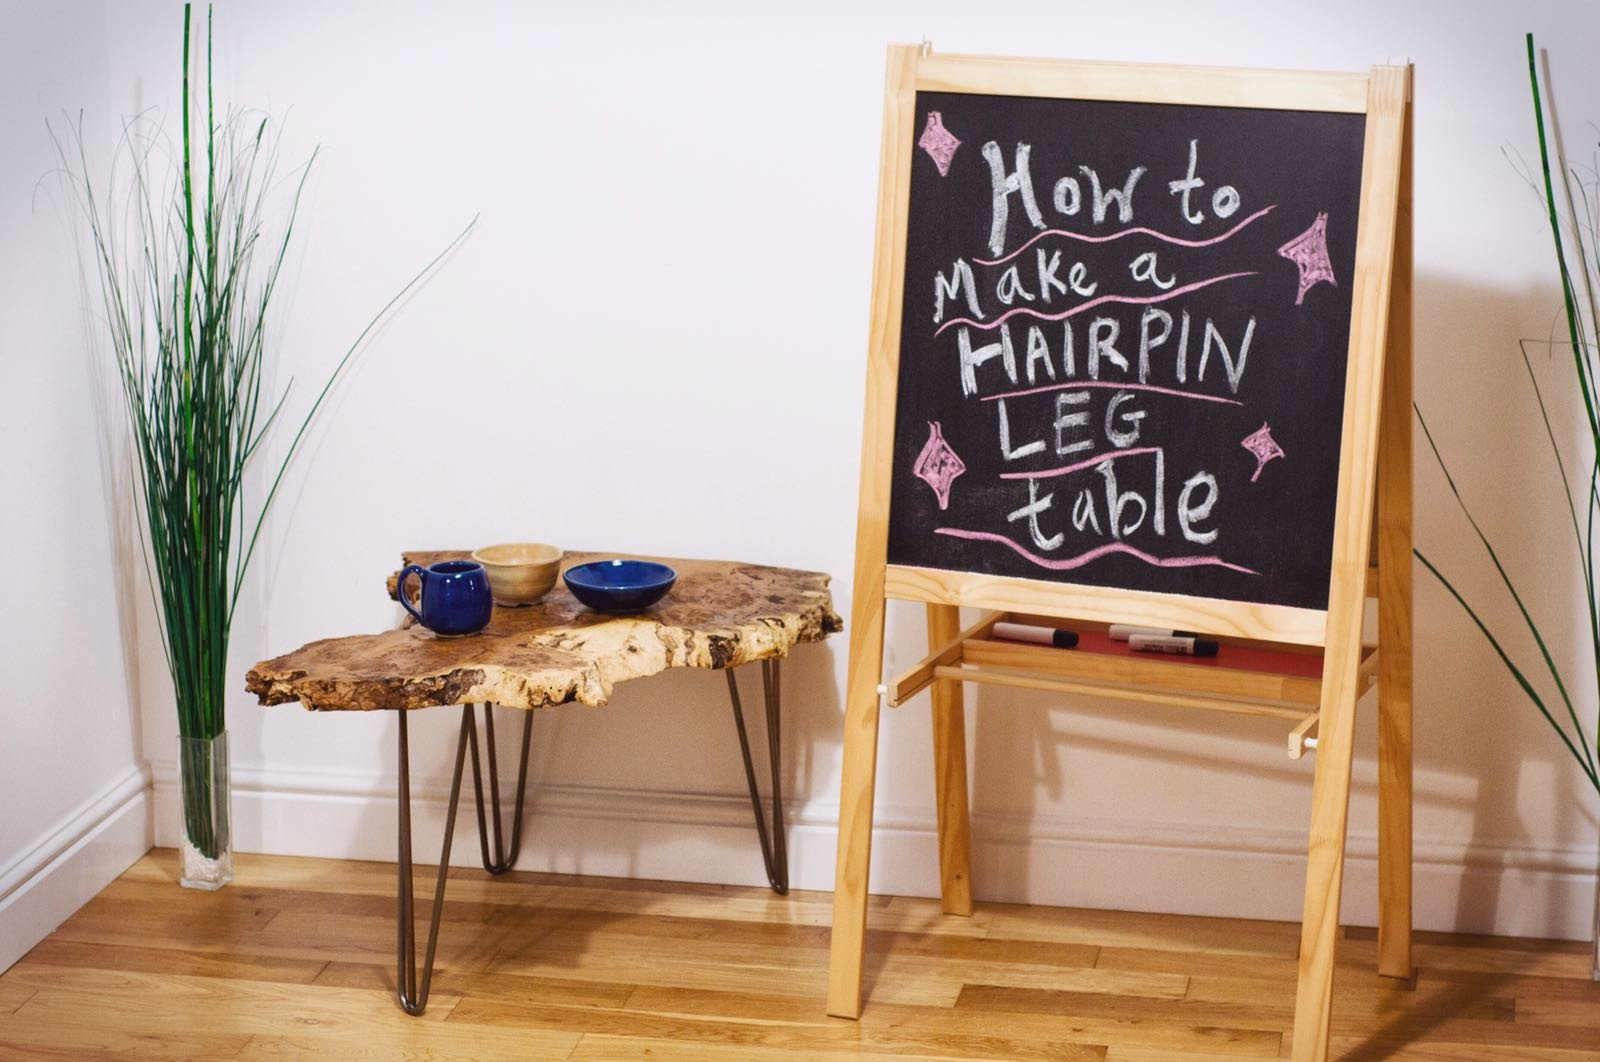 How to make your own hairpin leg table